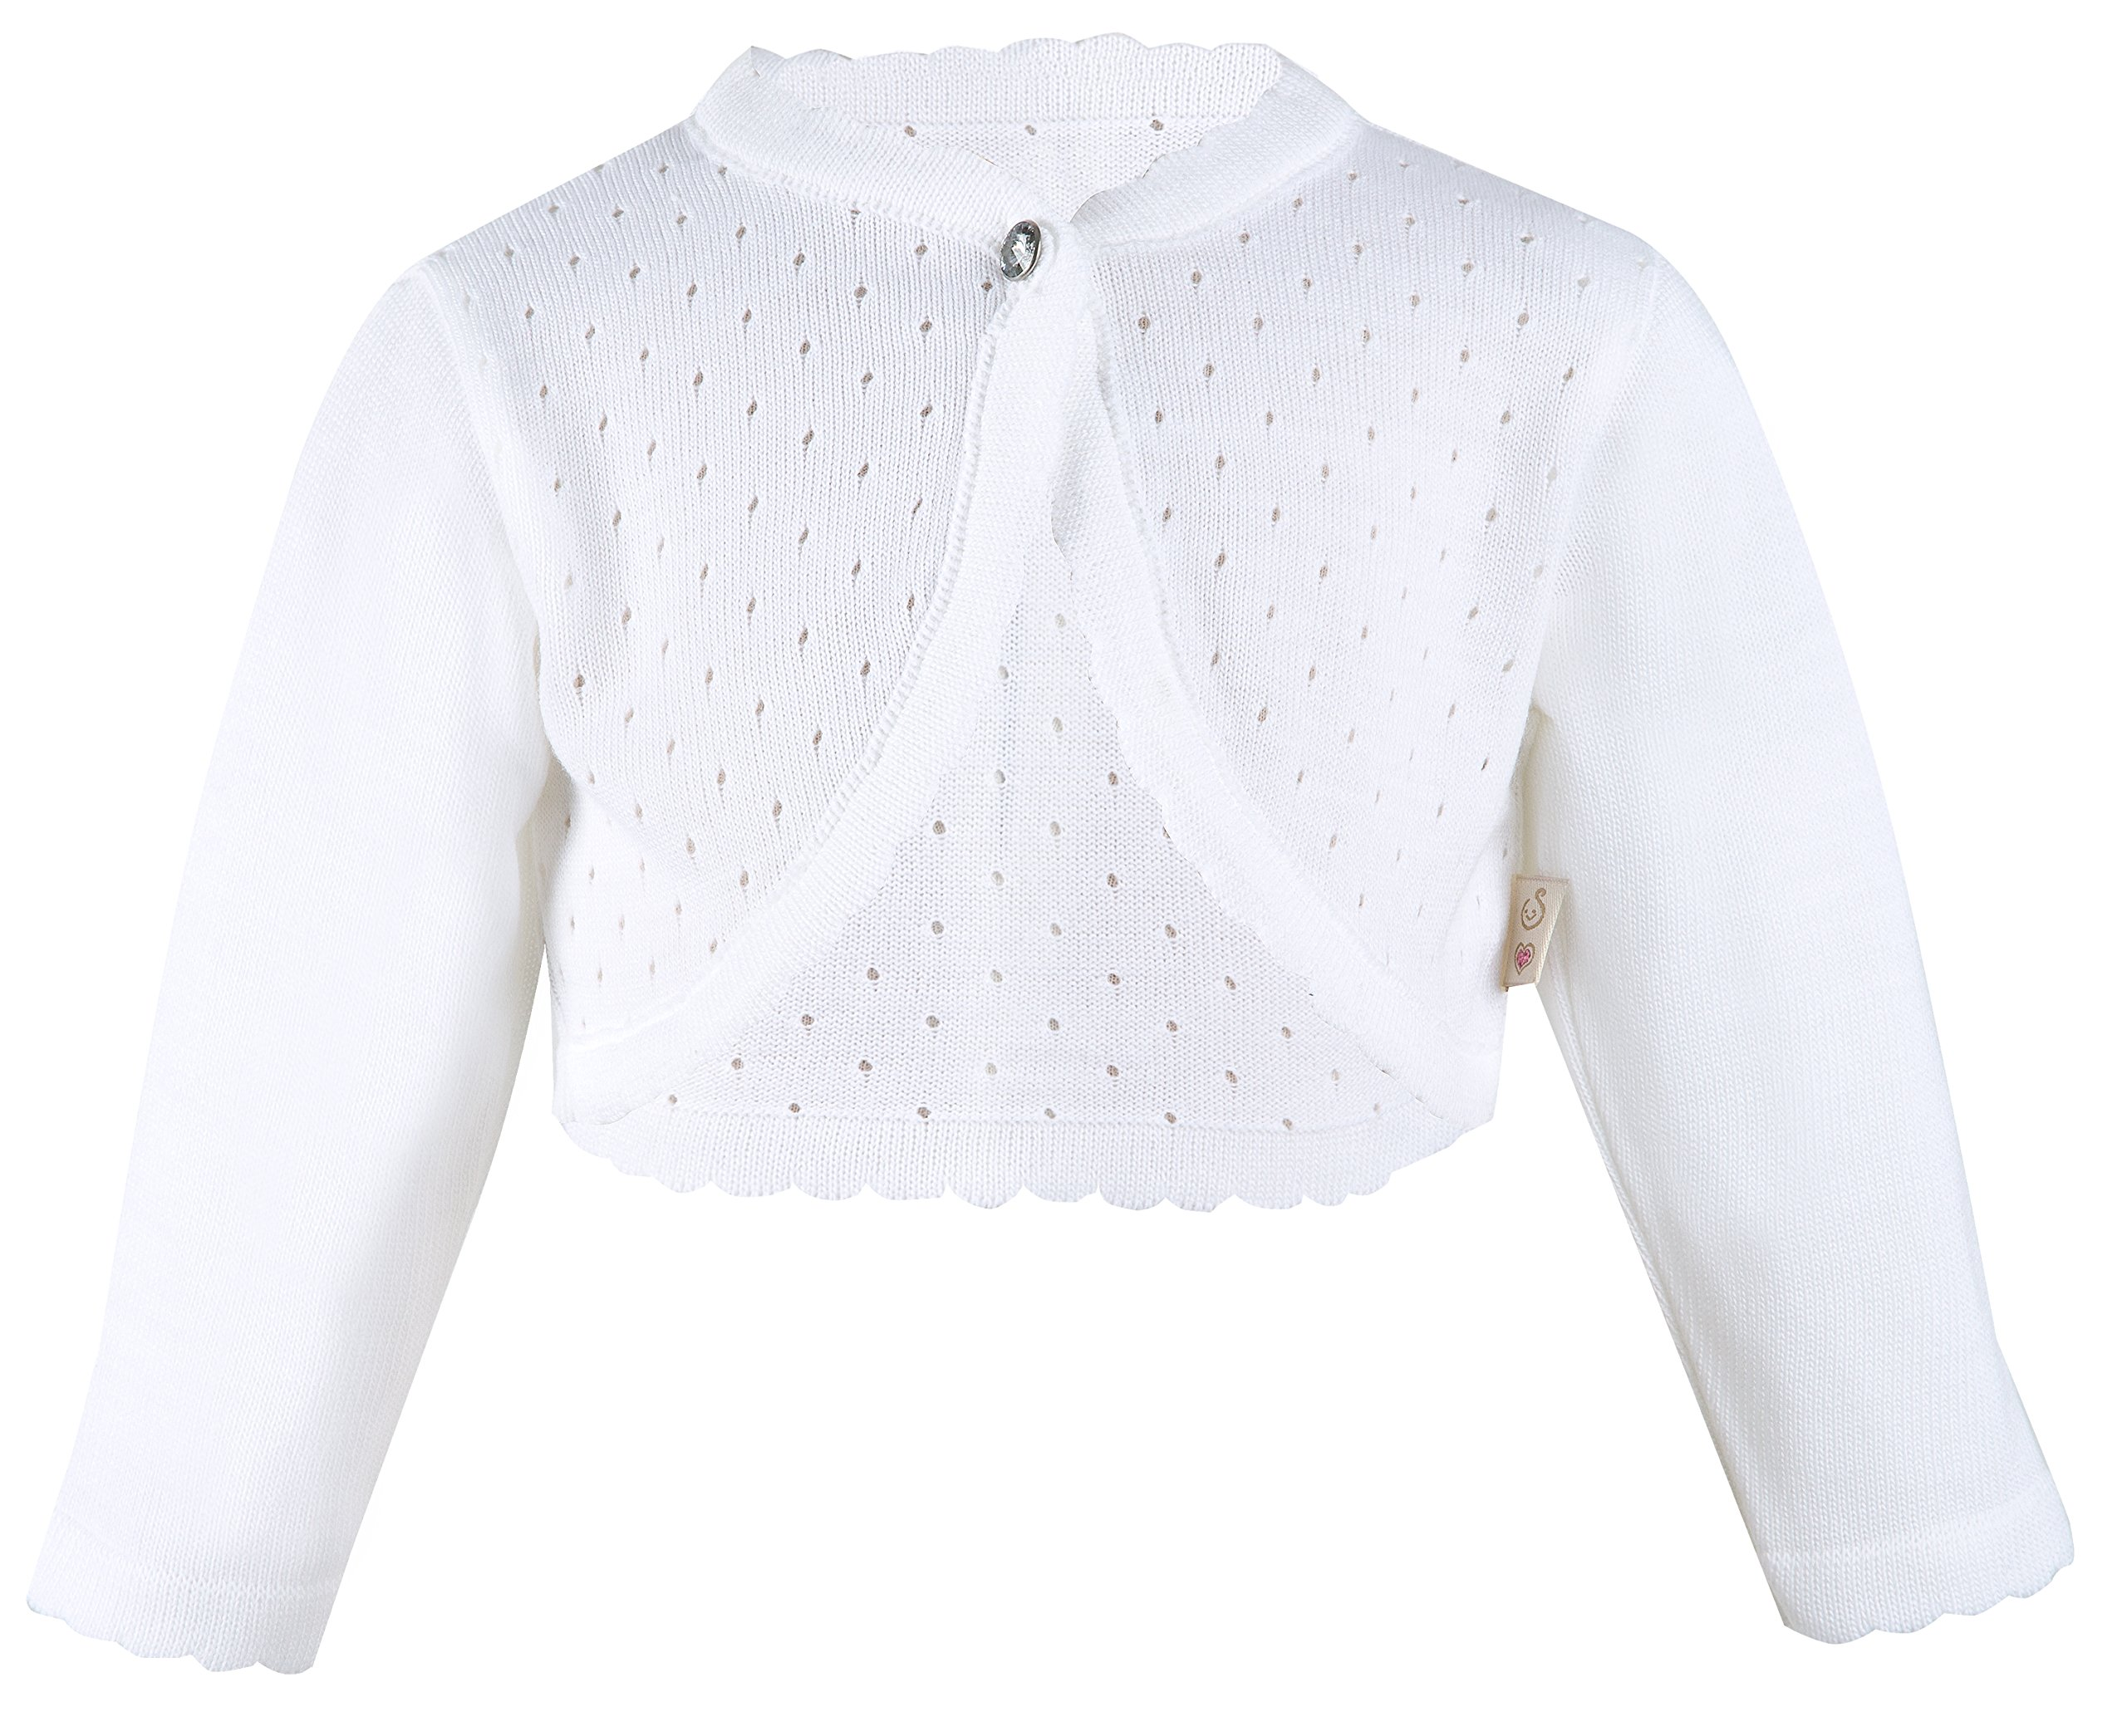 Lilax Little Girls' Knit Long Sleeve One Button Closure Bolero Shrug 2T White